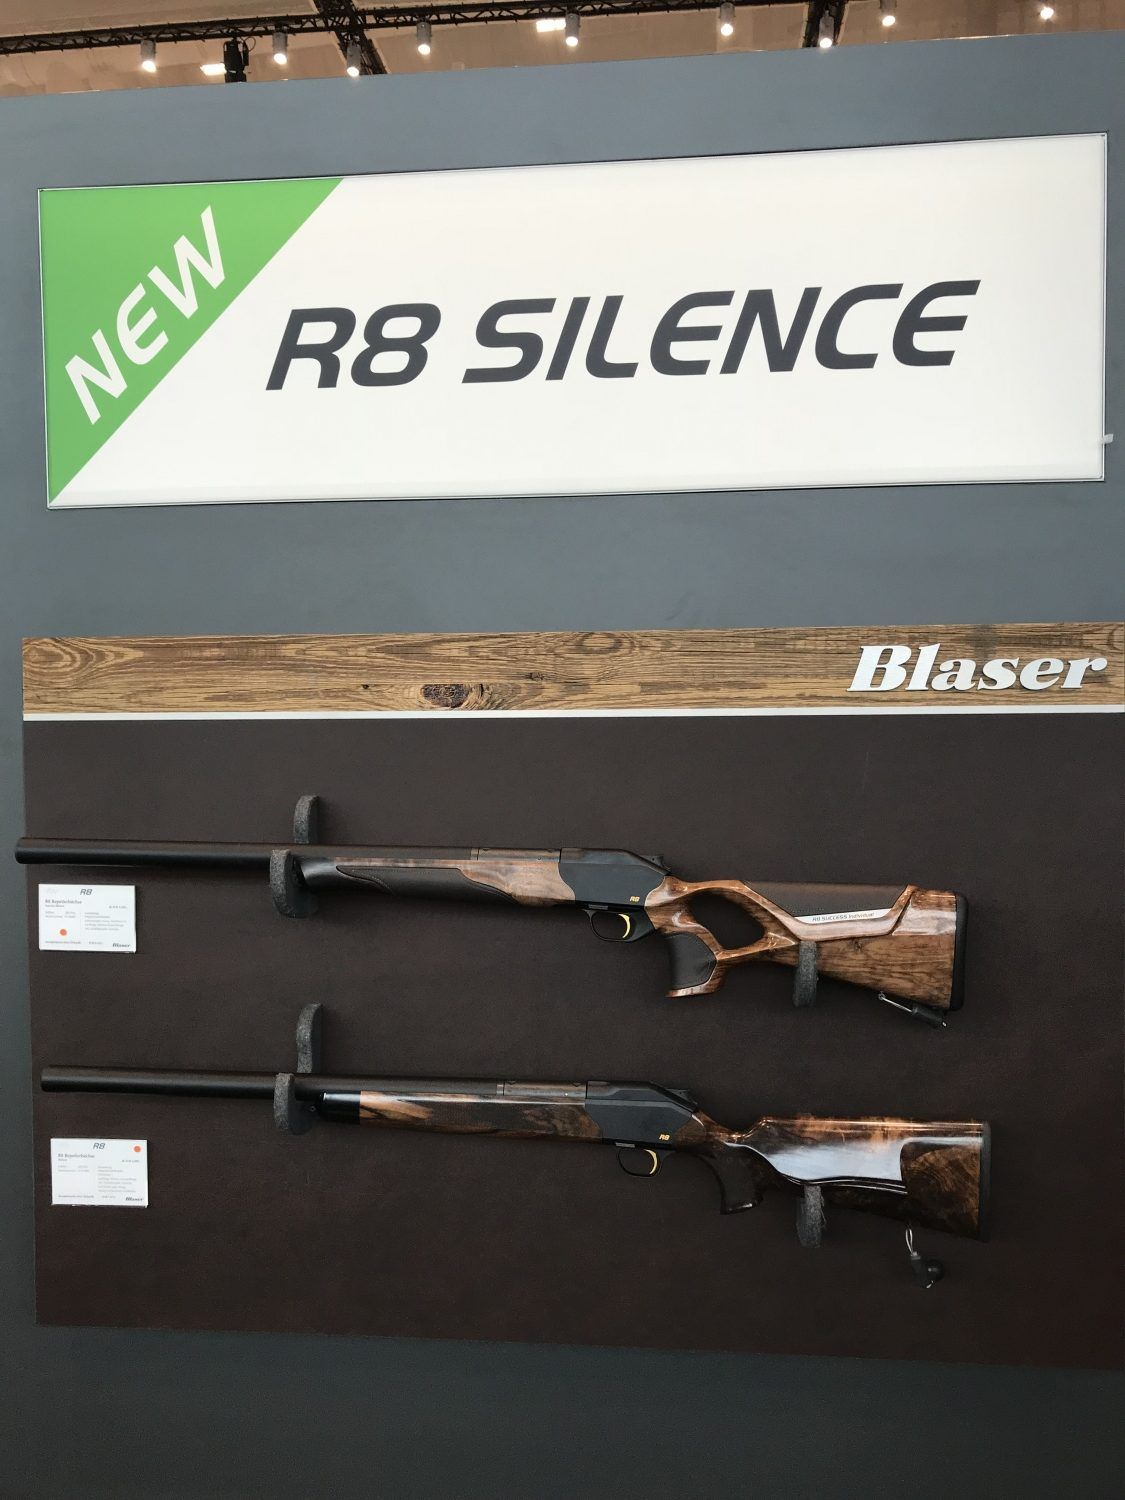 Blaser R8 Silence - with integrated Suppressor - The Firearm